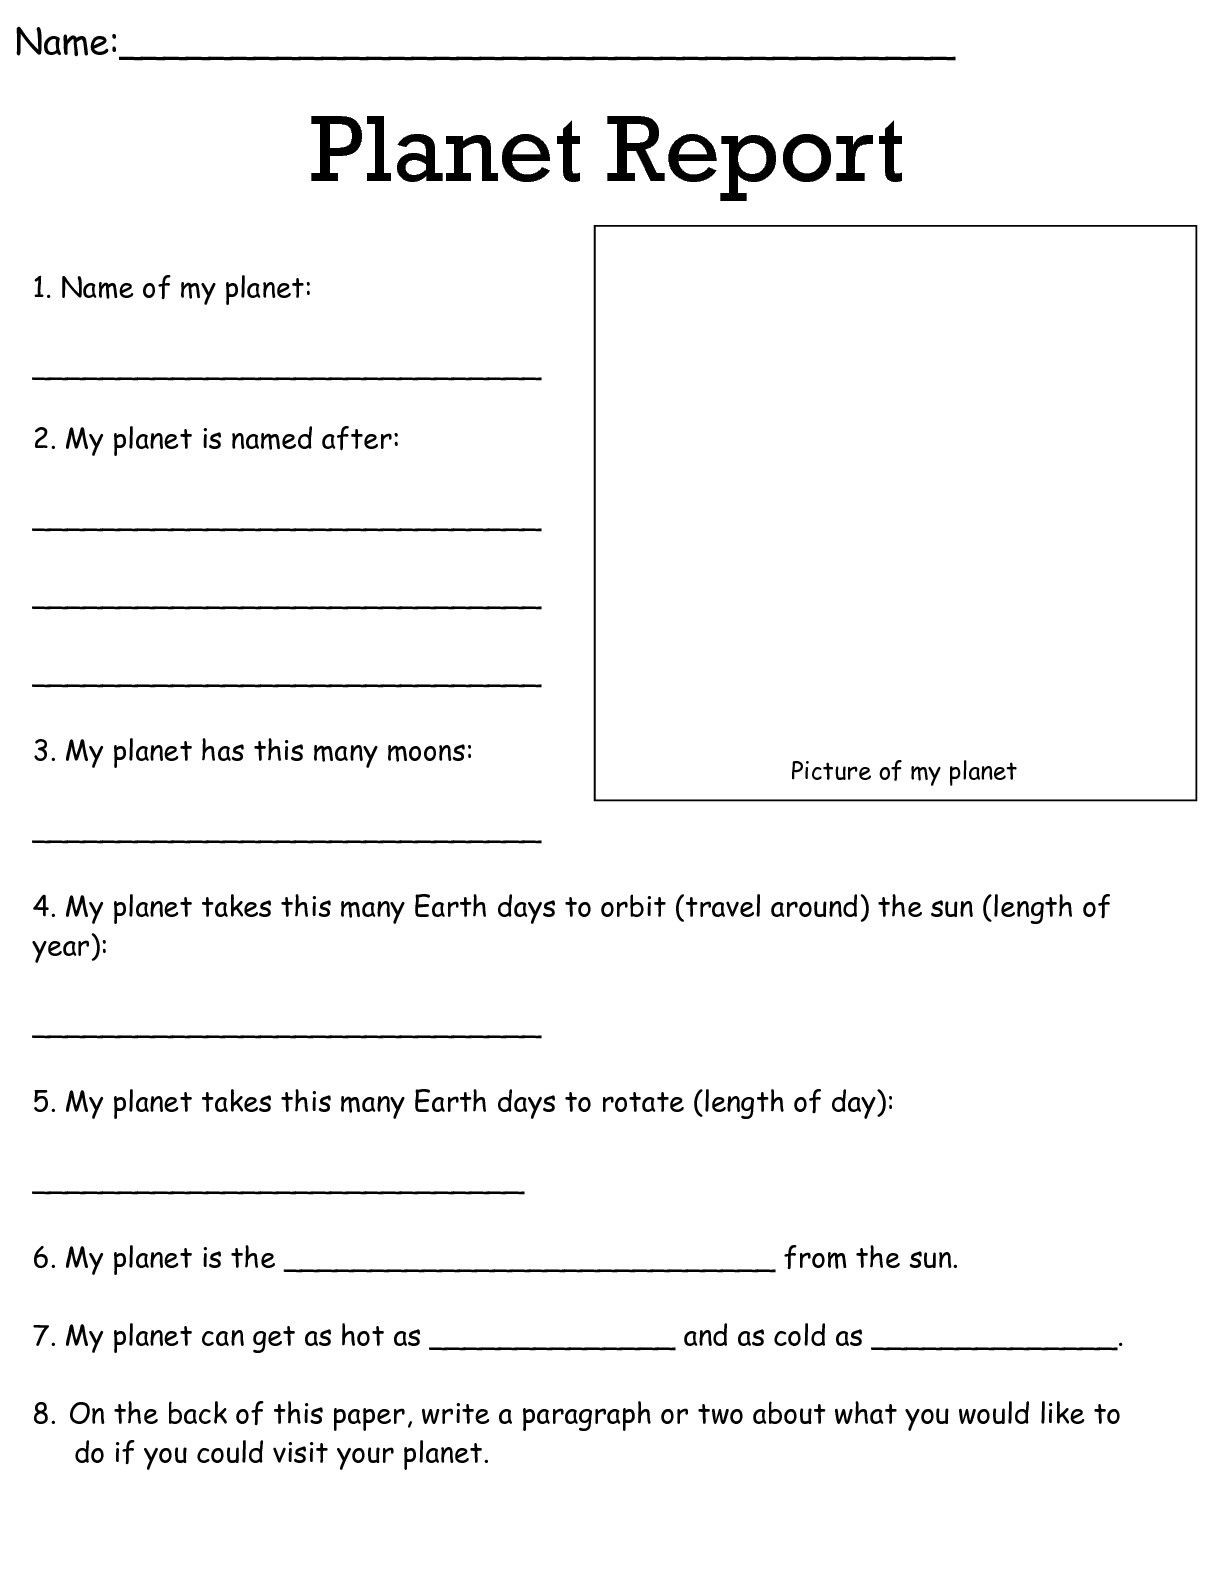 Scientific Method Worksheets 5th Grade Free Printable Worksheets for 3rd Grade Science